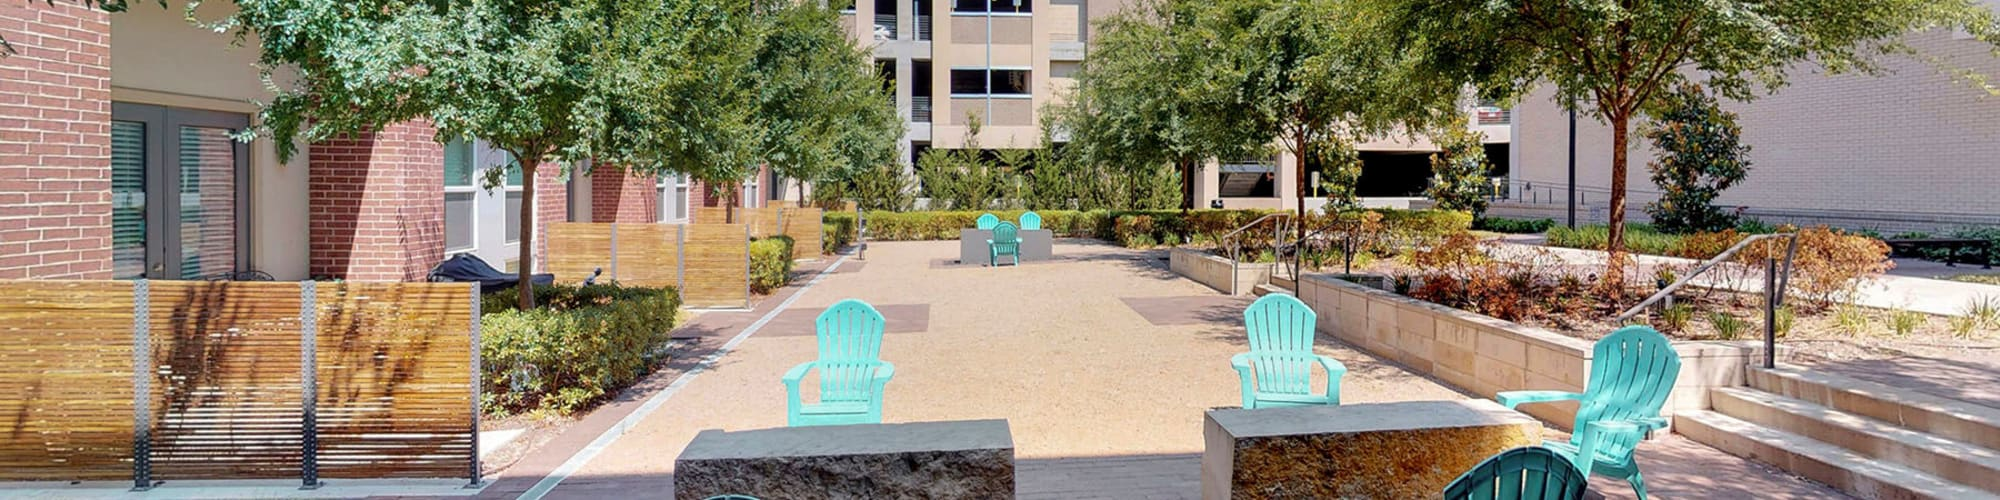 Reviews of Oaks 5th Street Crossing City Center in Garland, Texas